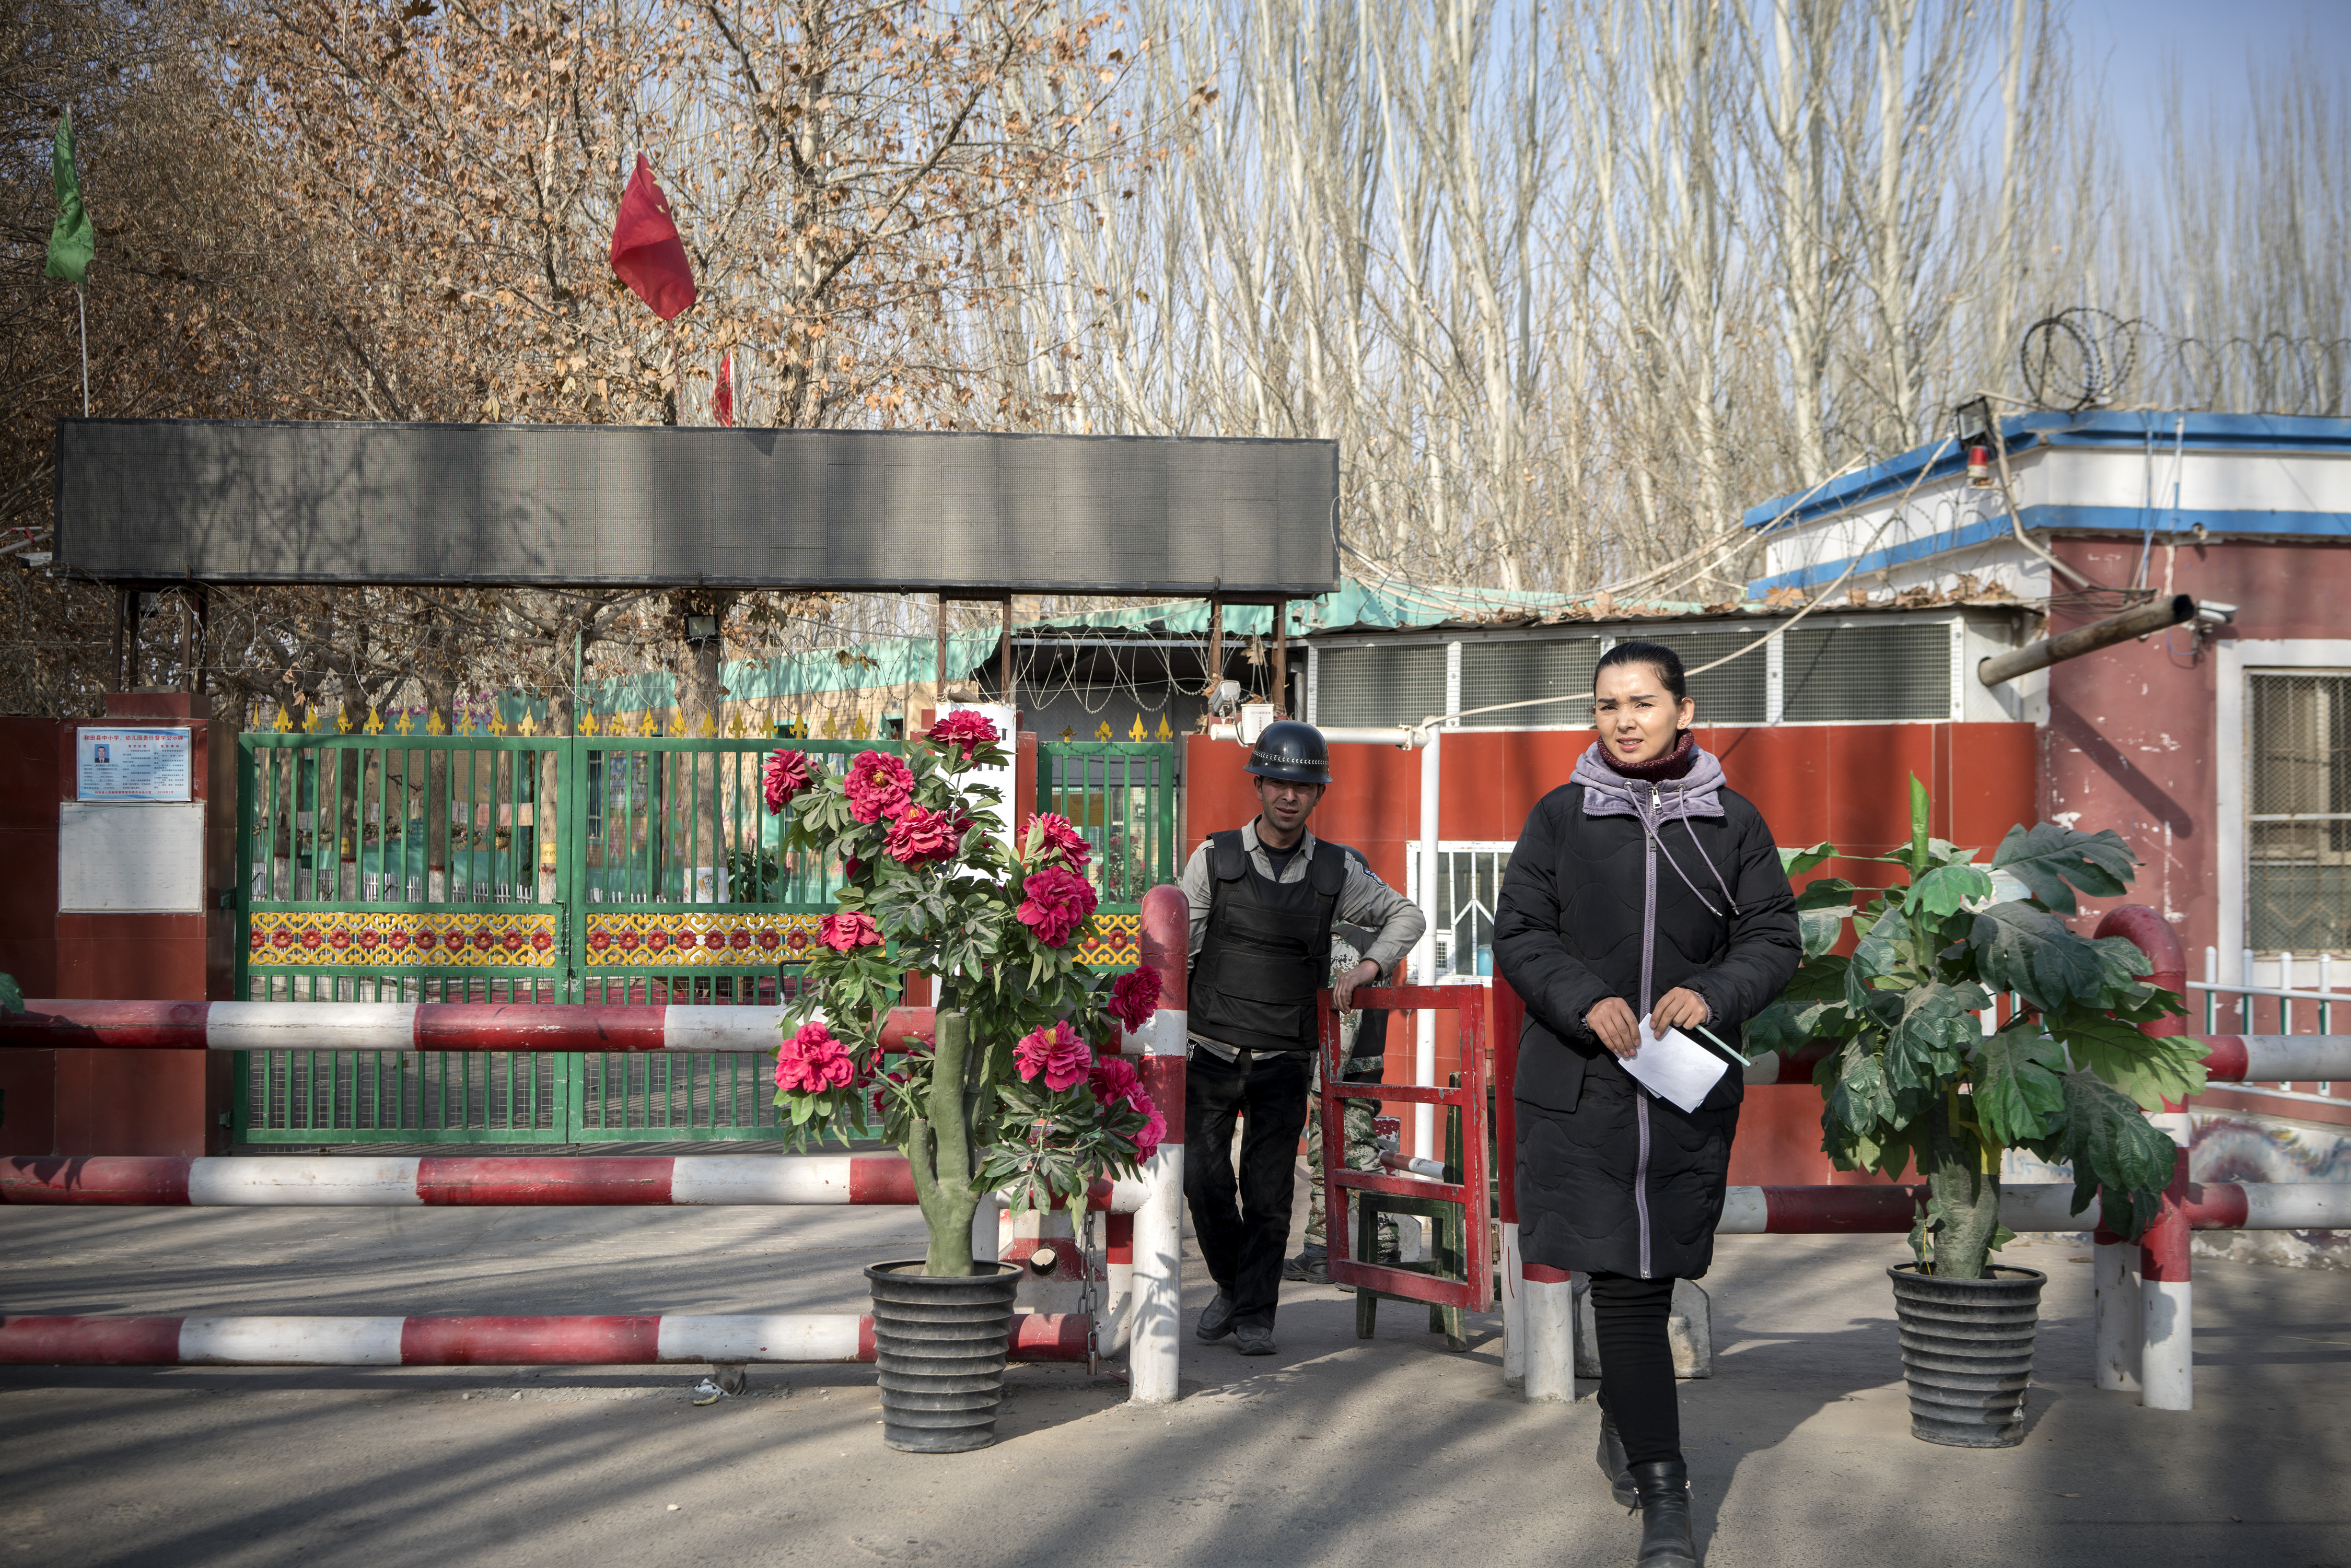 In Chinas Crackdown on Muslims, Children Have Not Been Spared